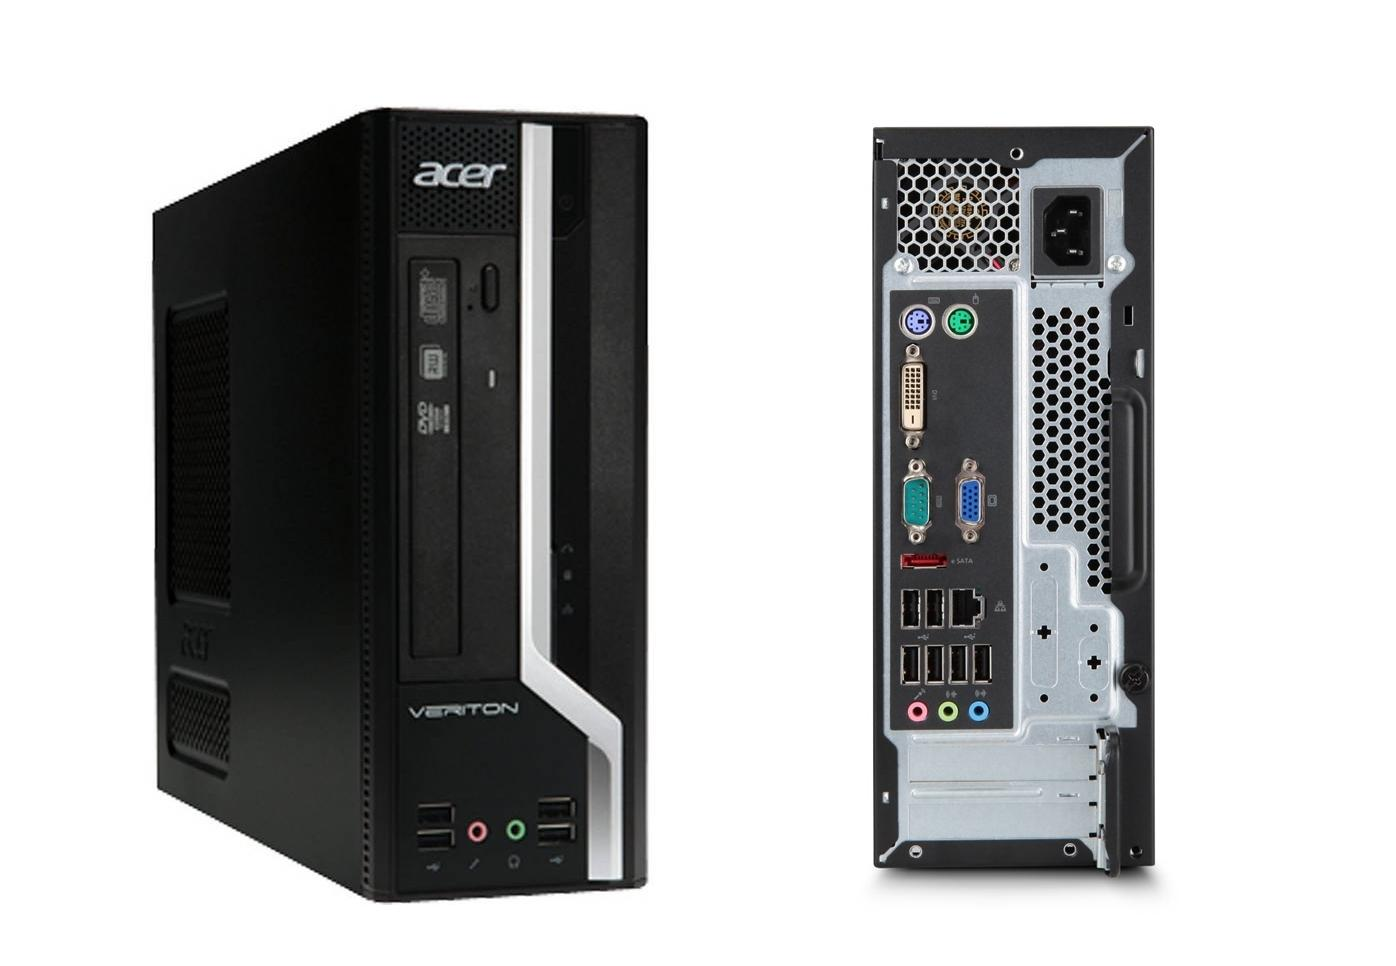 Acer veriton x680g core i5 desktop win 7 with 22 display 6 mth